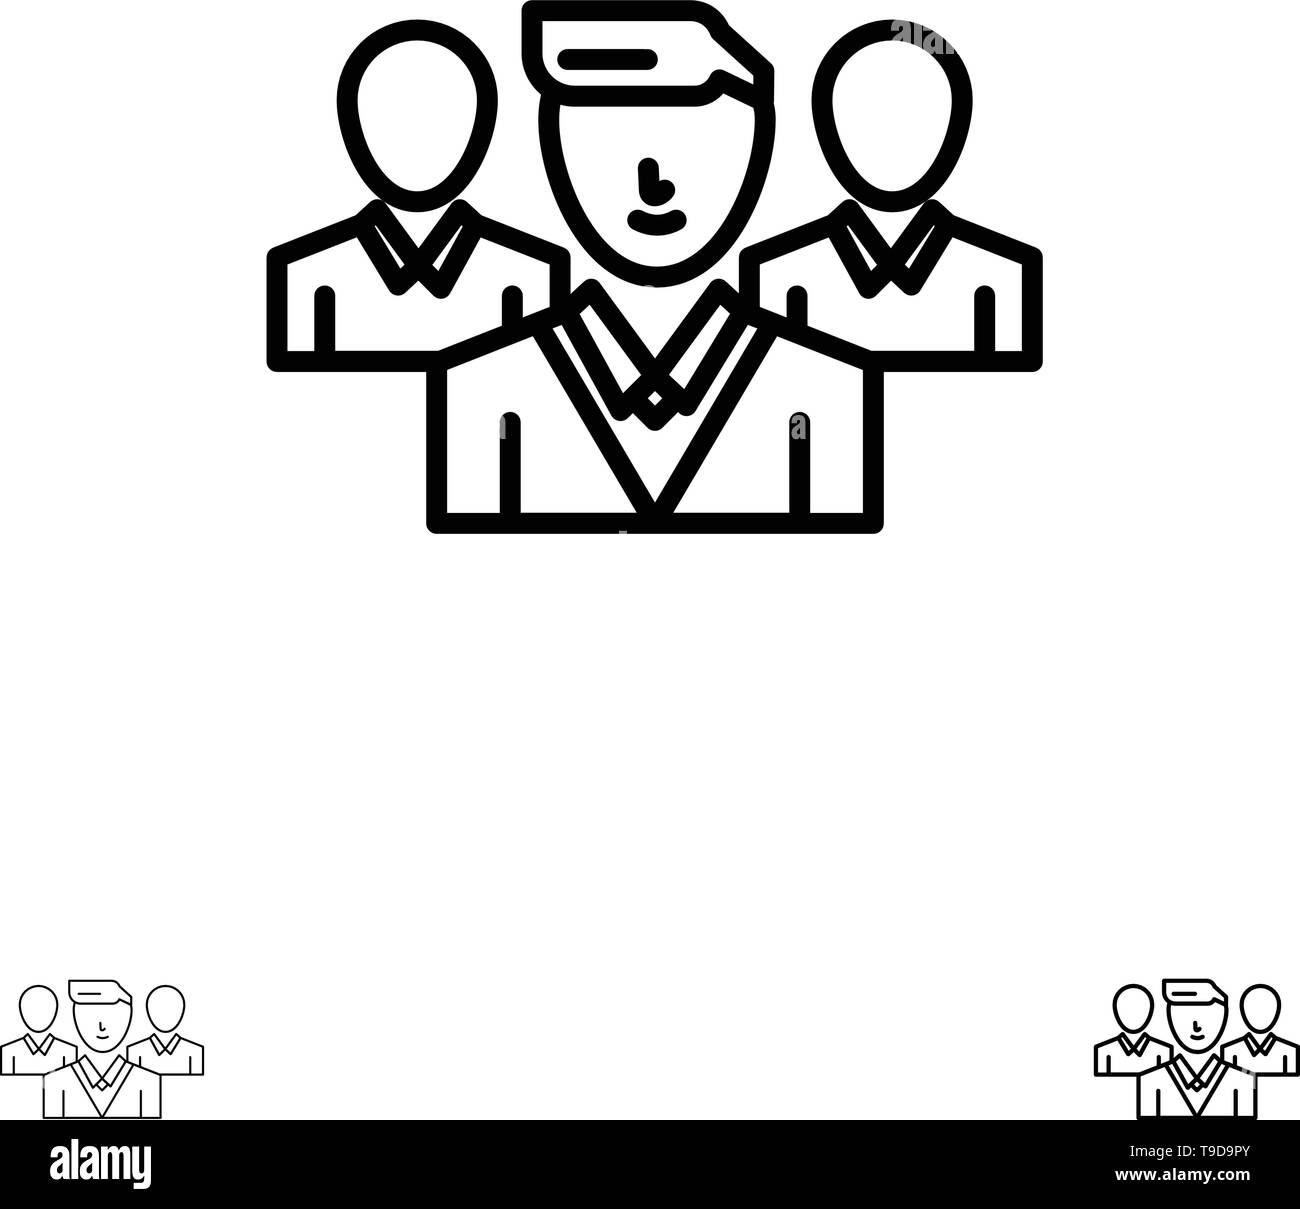 Staff, Security, Friend zone, Gang Bold and thin black line icon set - Stock Image